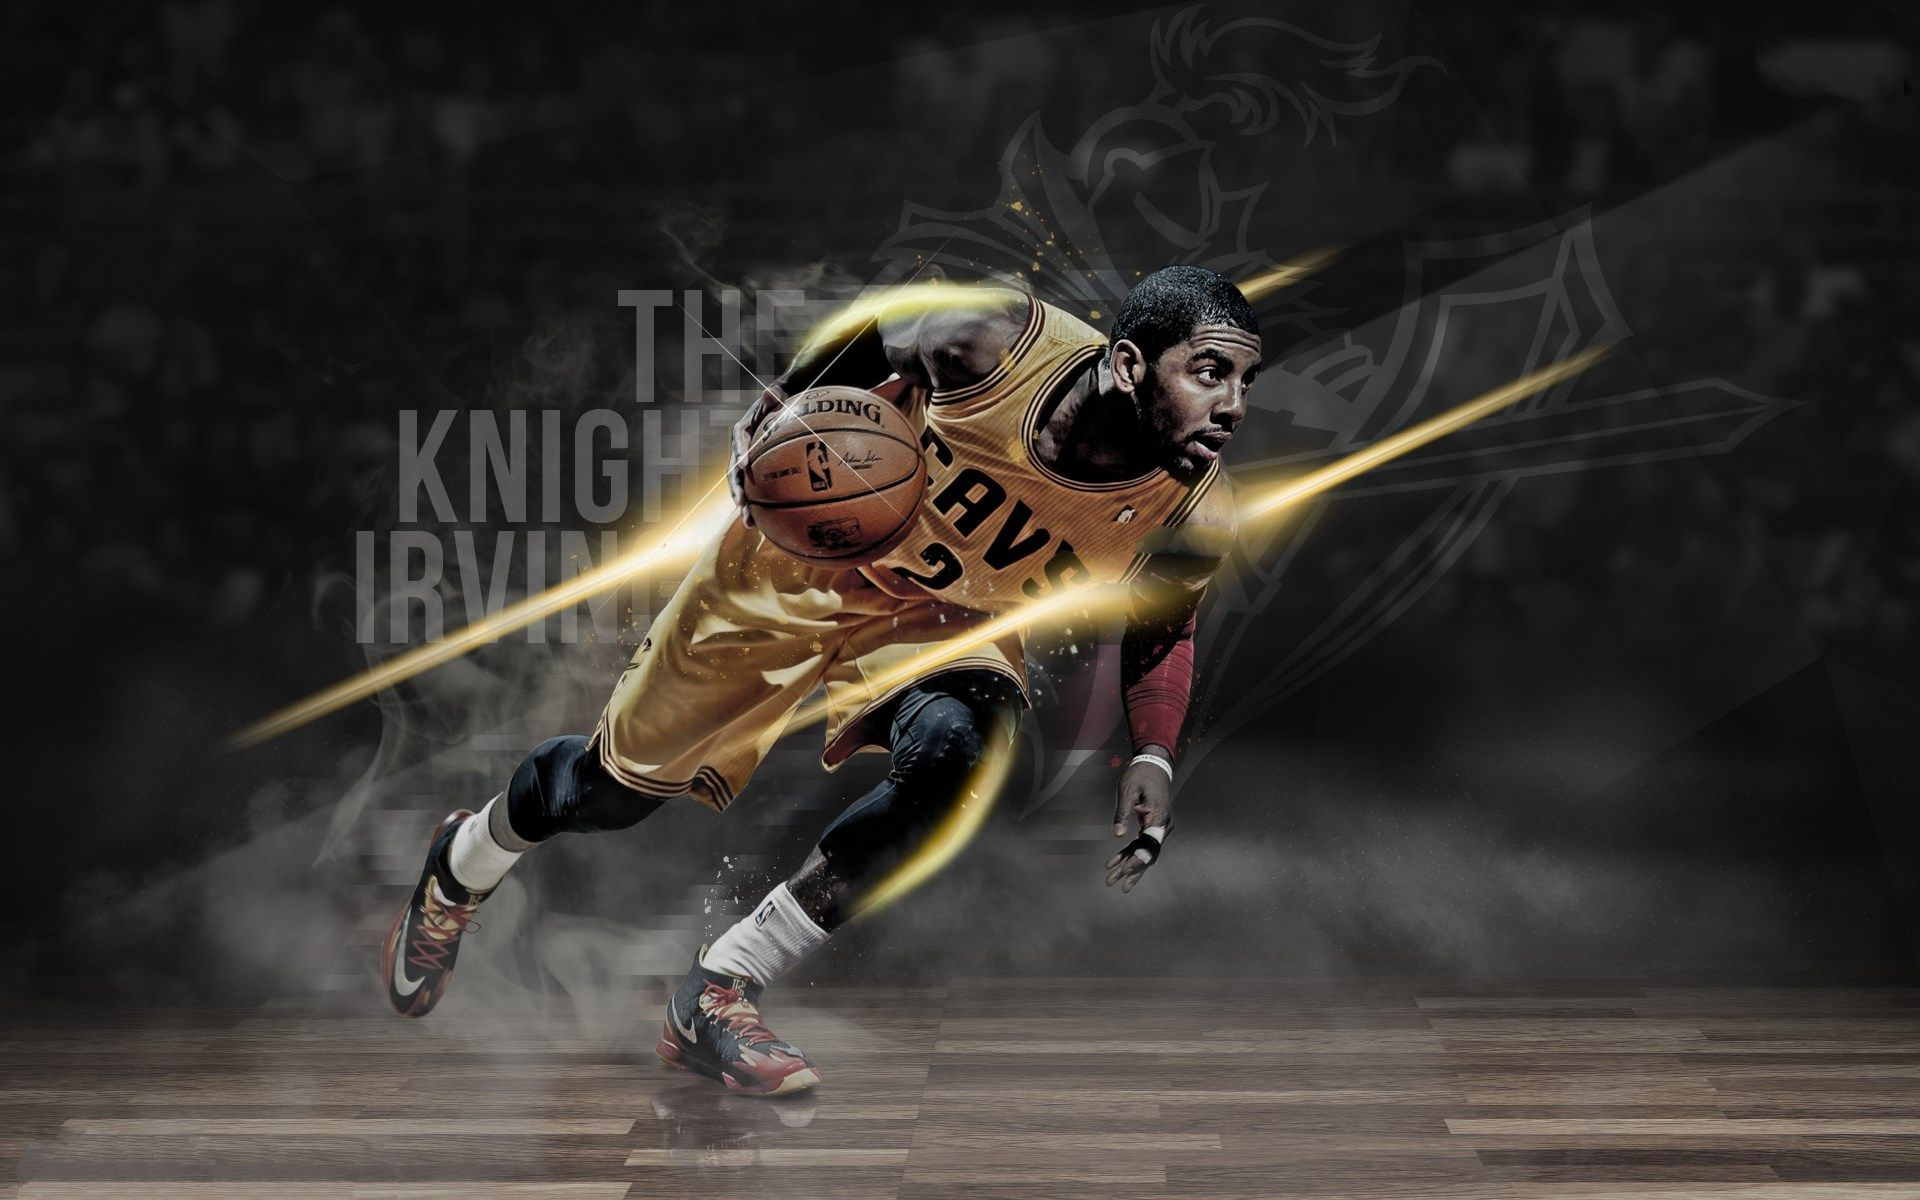 Kyrie Irving Android Hd Wallpaper